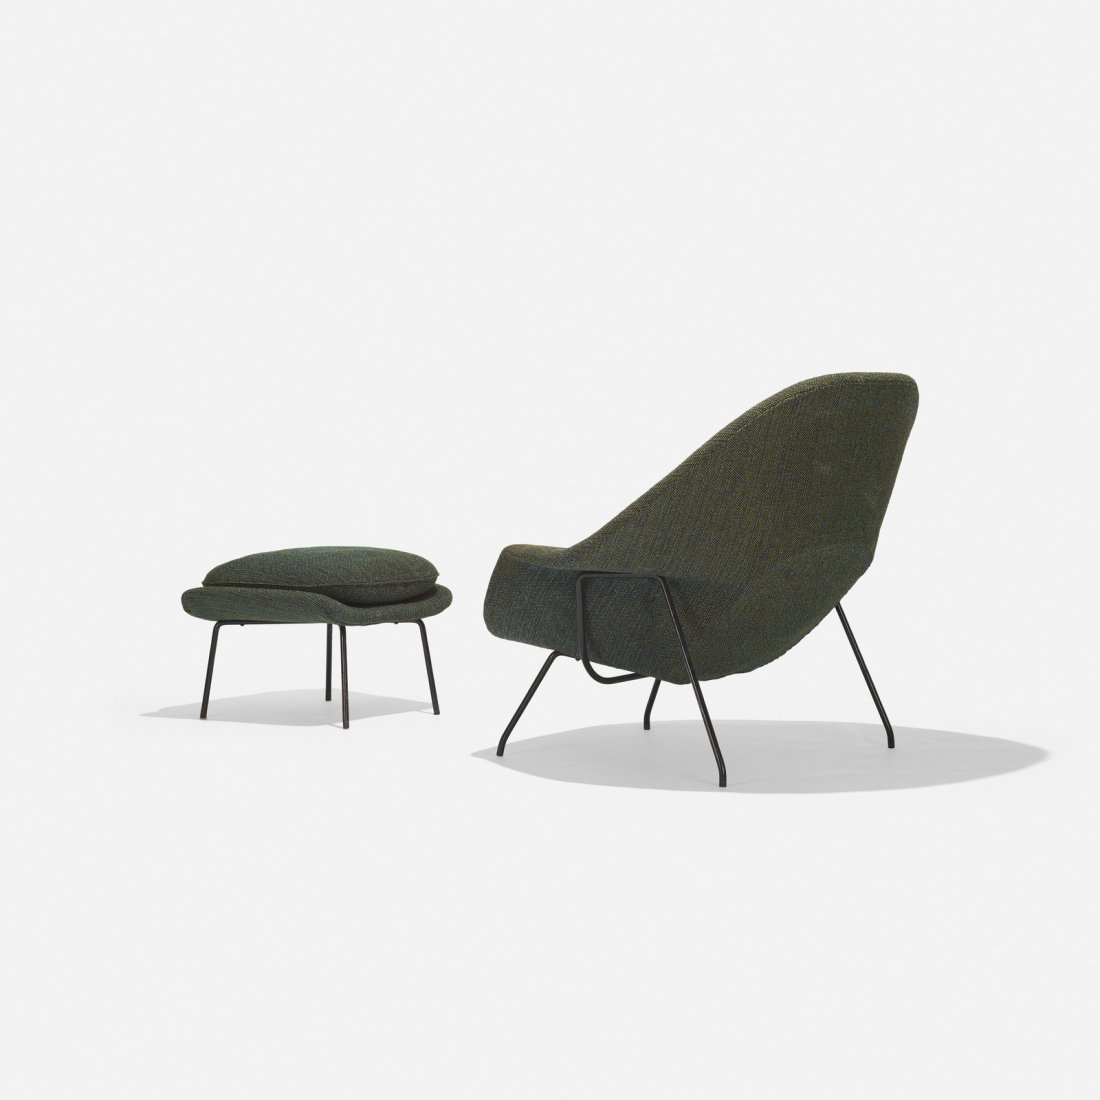 Eero Saarinen, Womb chair and ottoman - 3